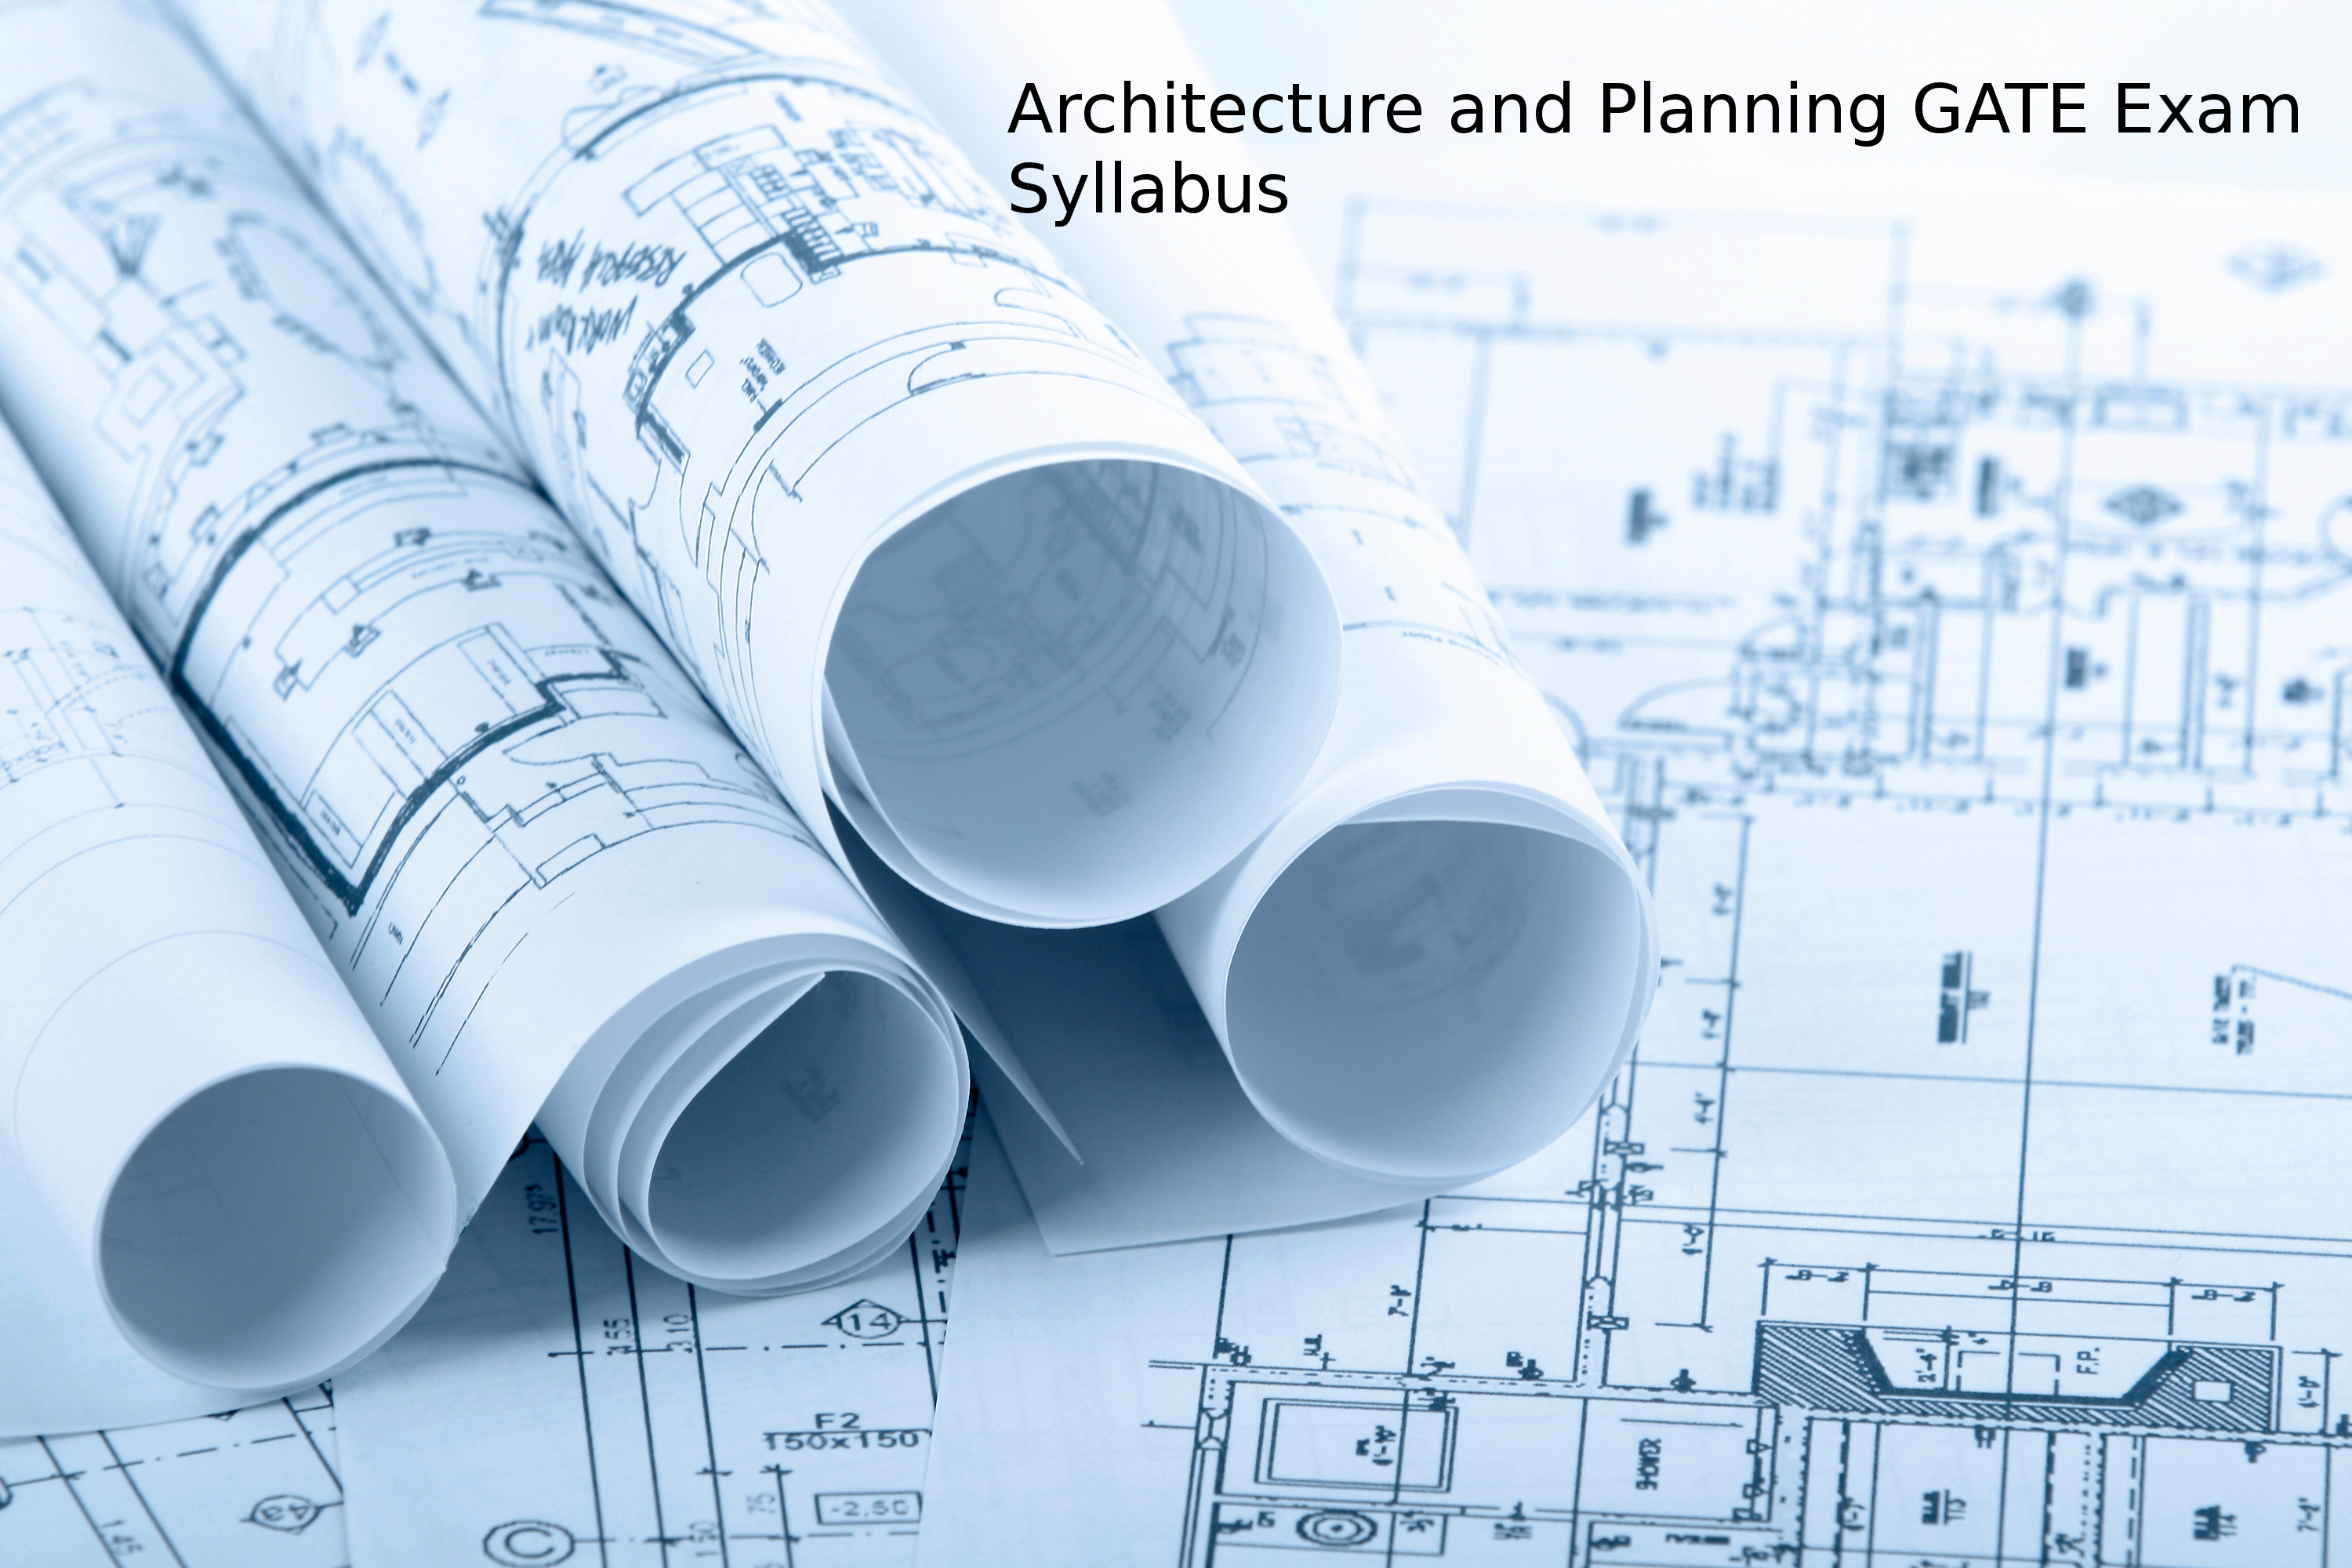 AR: Architecture and Planning GATE Exam Syllabus